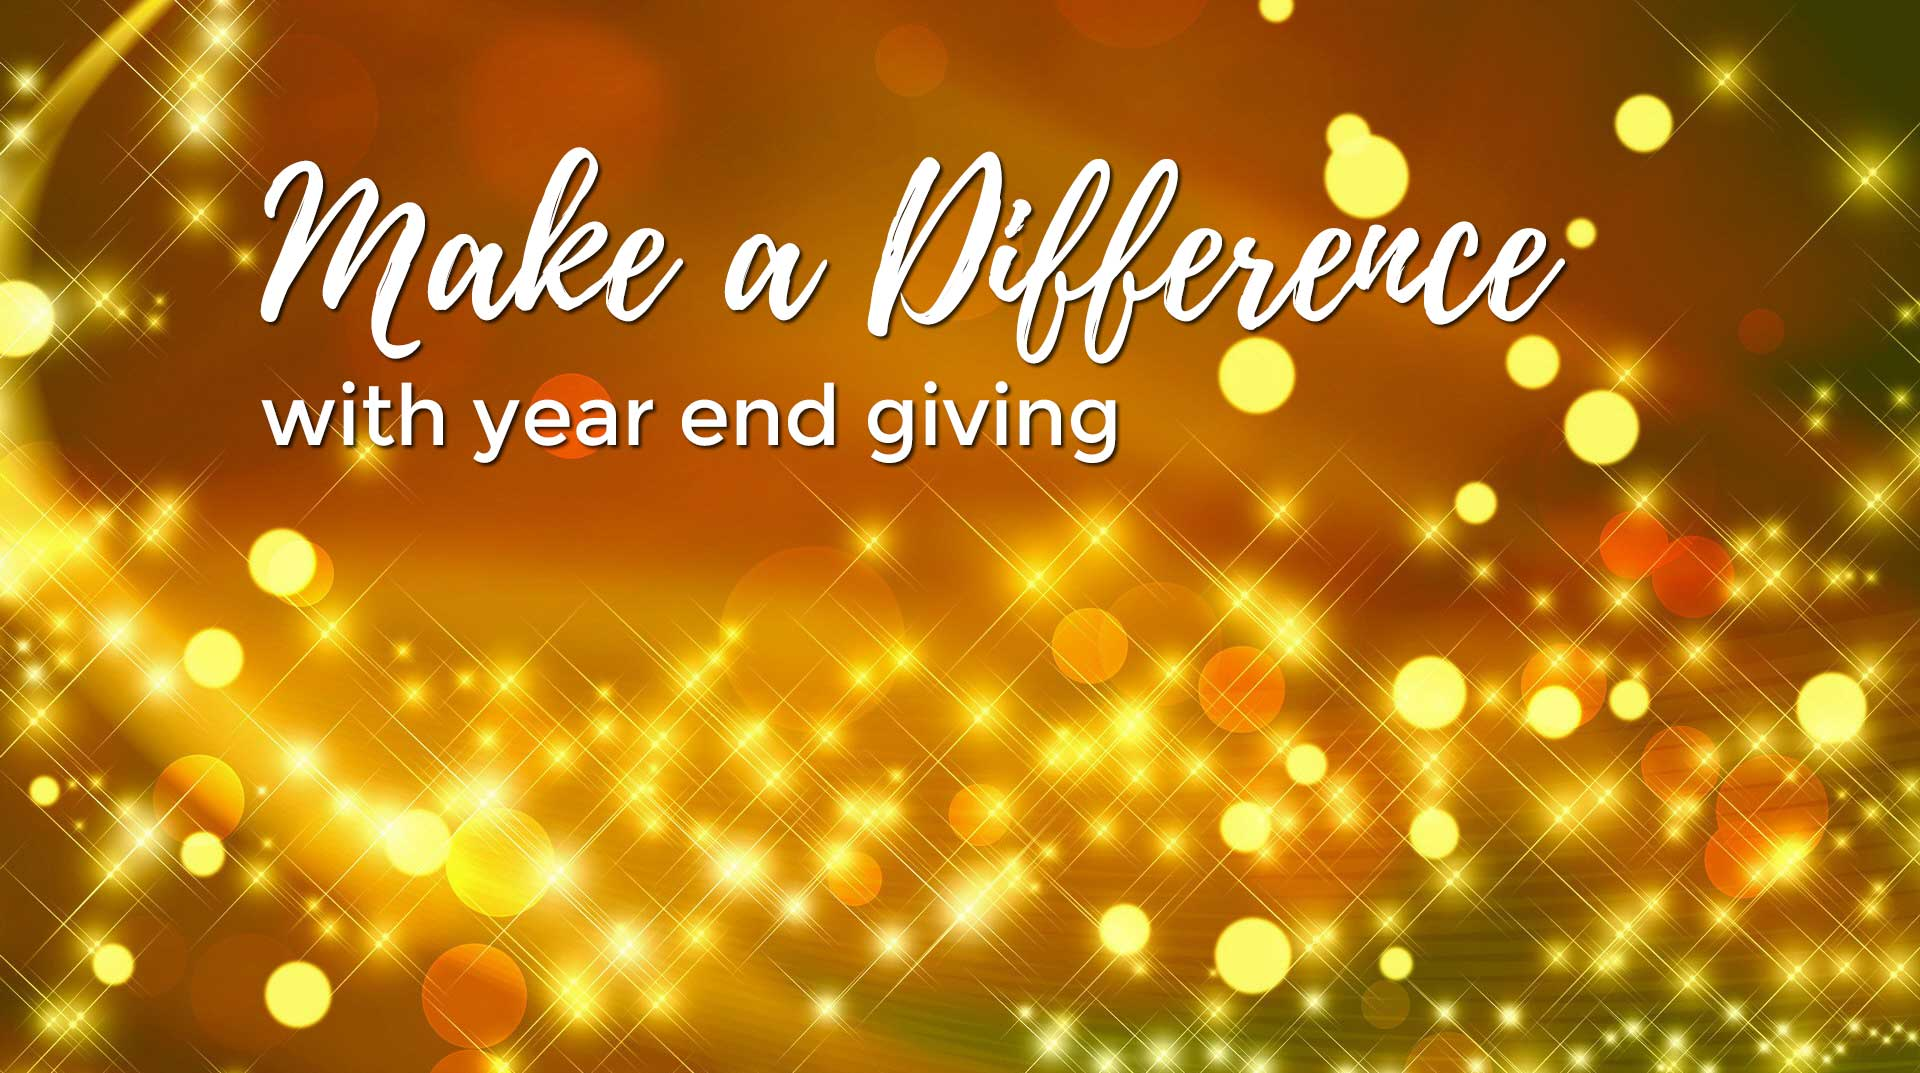 Make a difference through year end giving